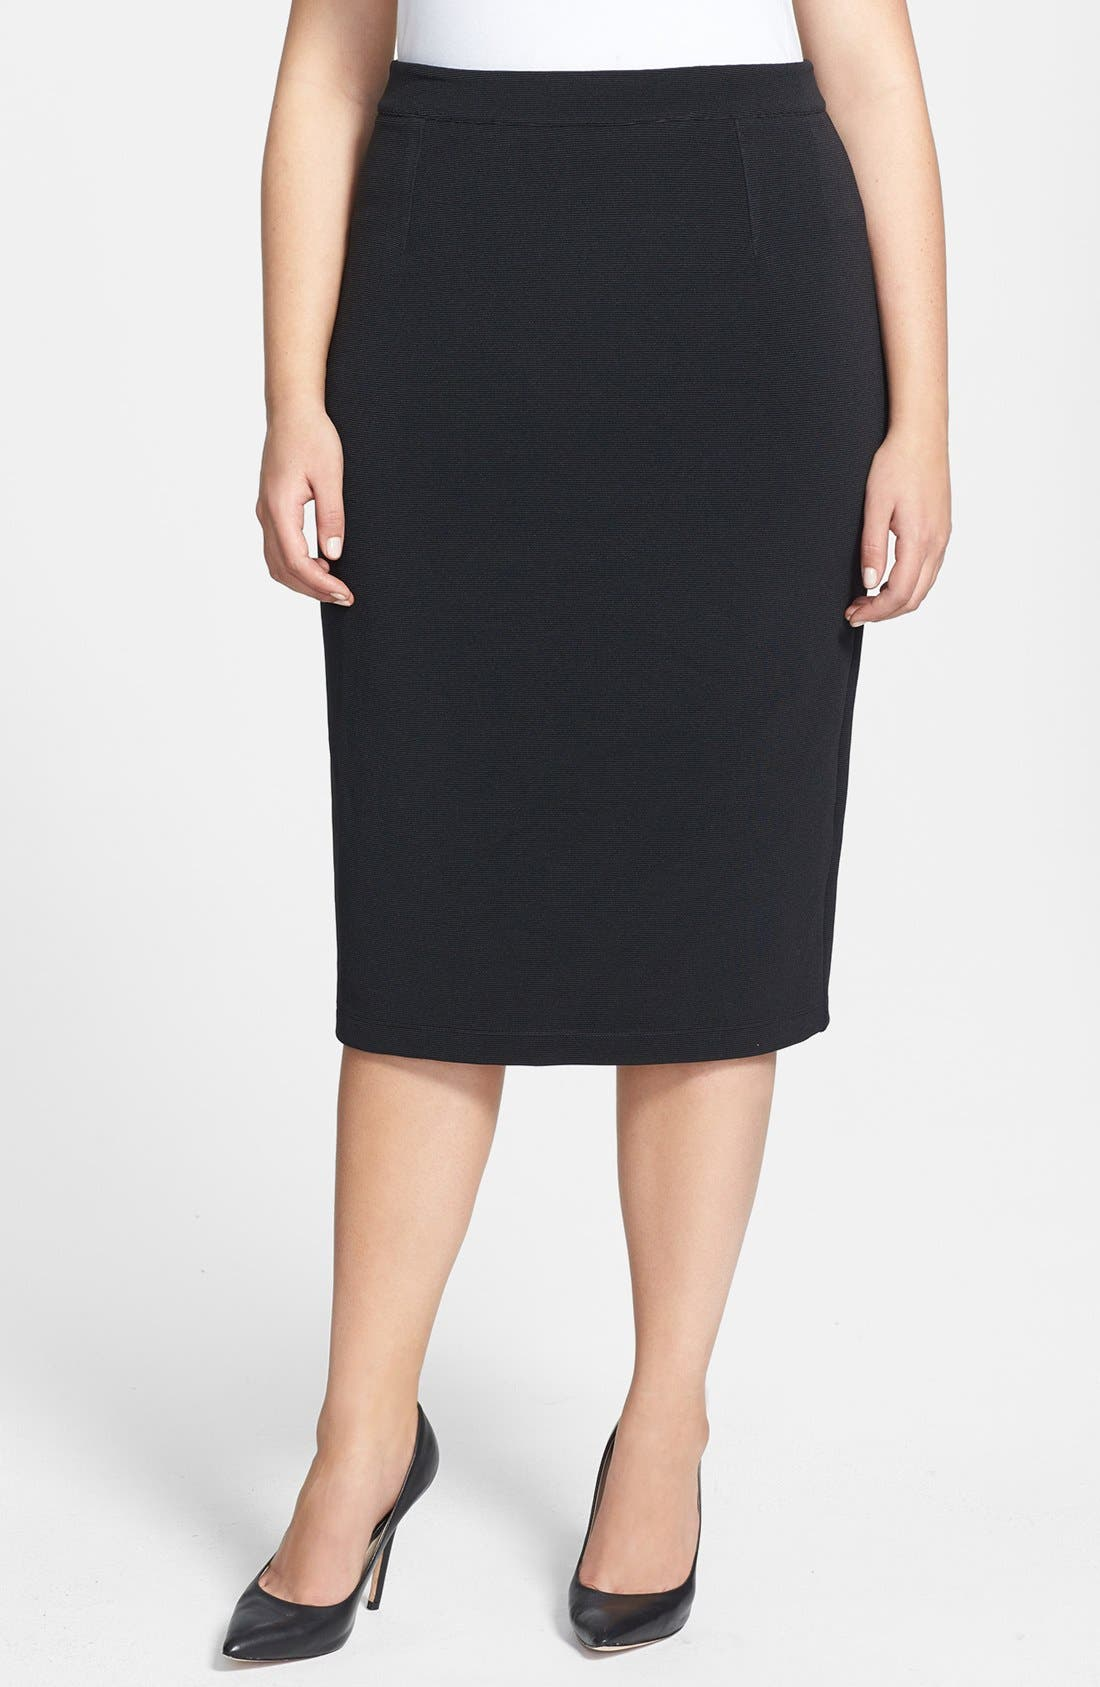 Alternate Image 1 Selected - Halogen® Pencil Skirt (Plus Size)